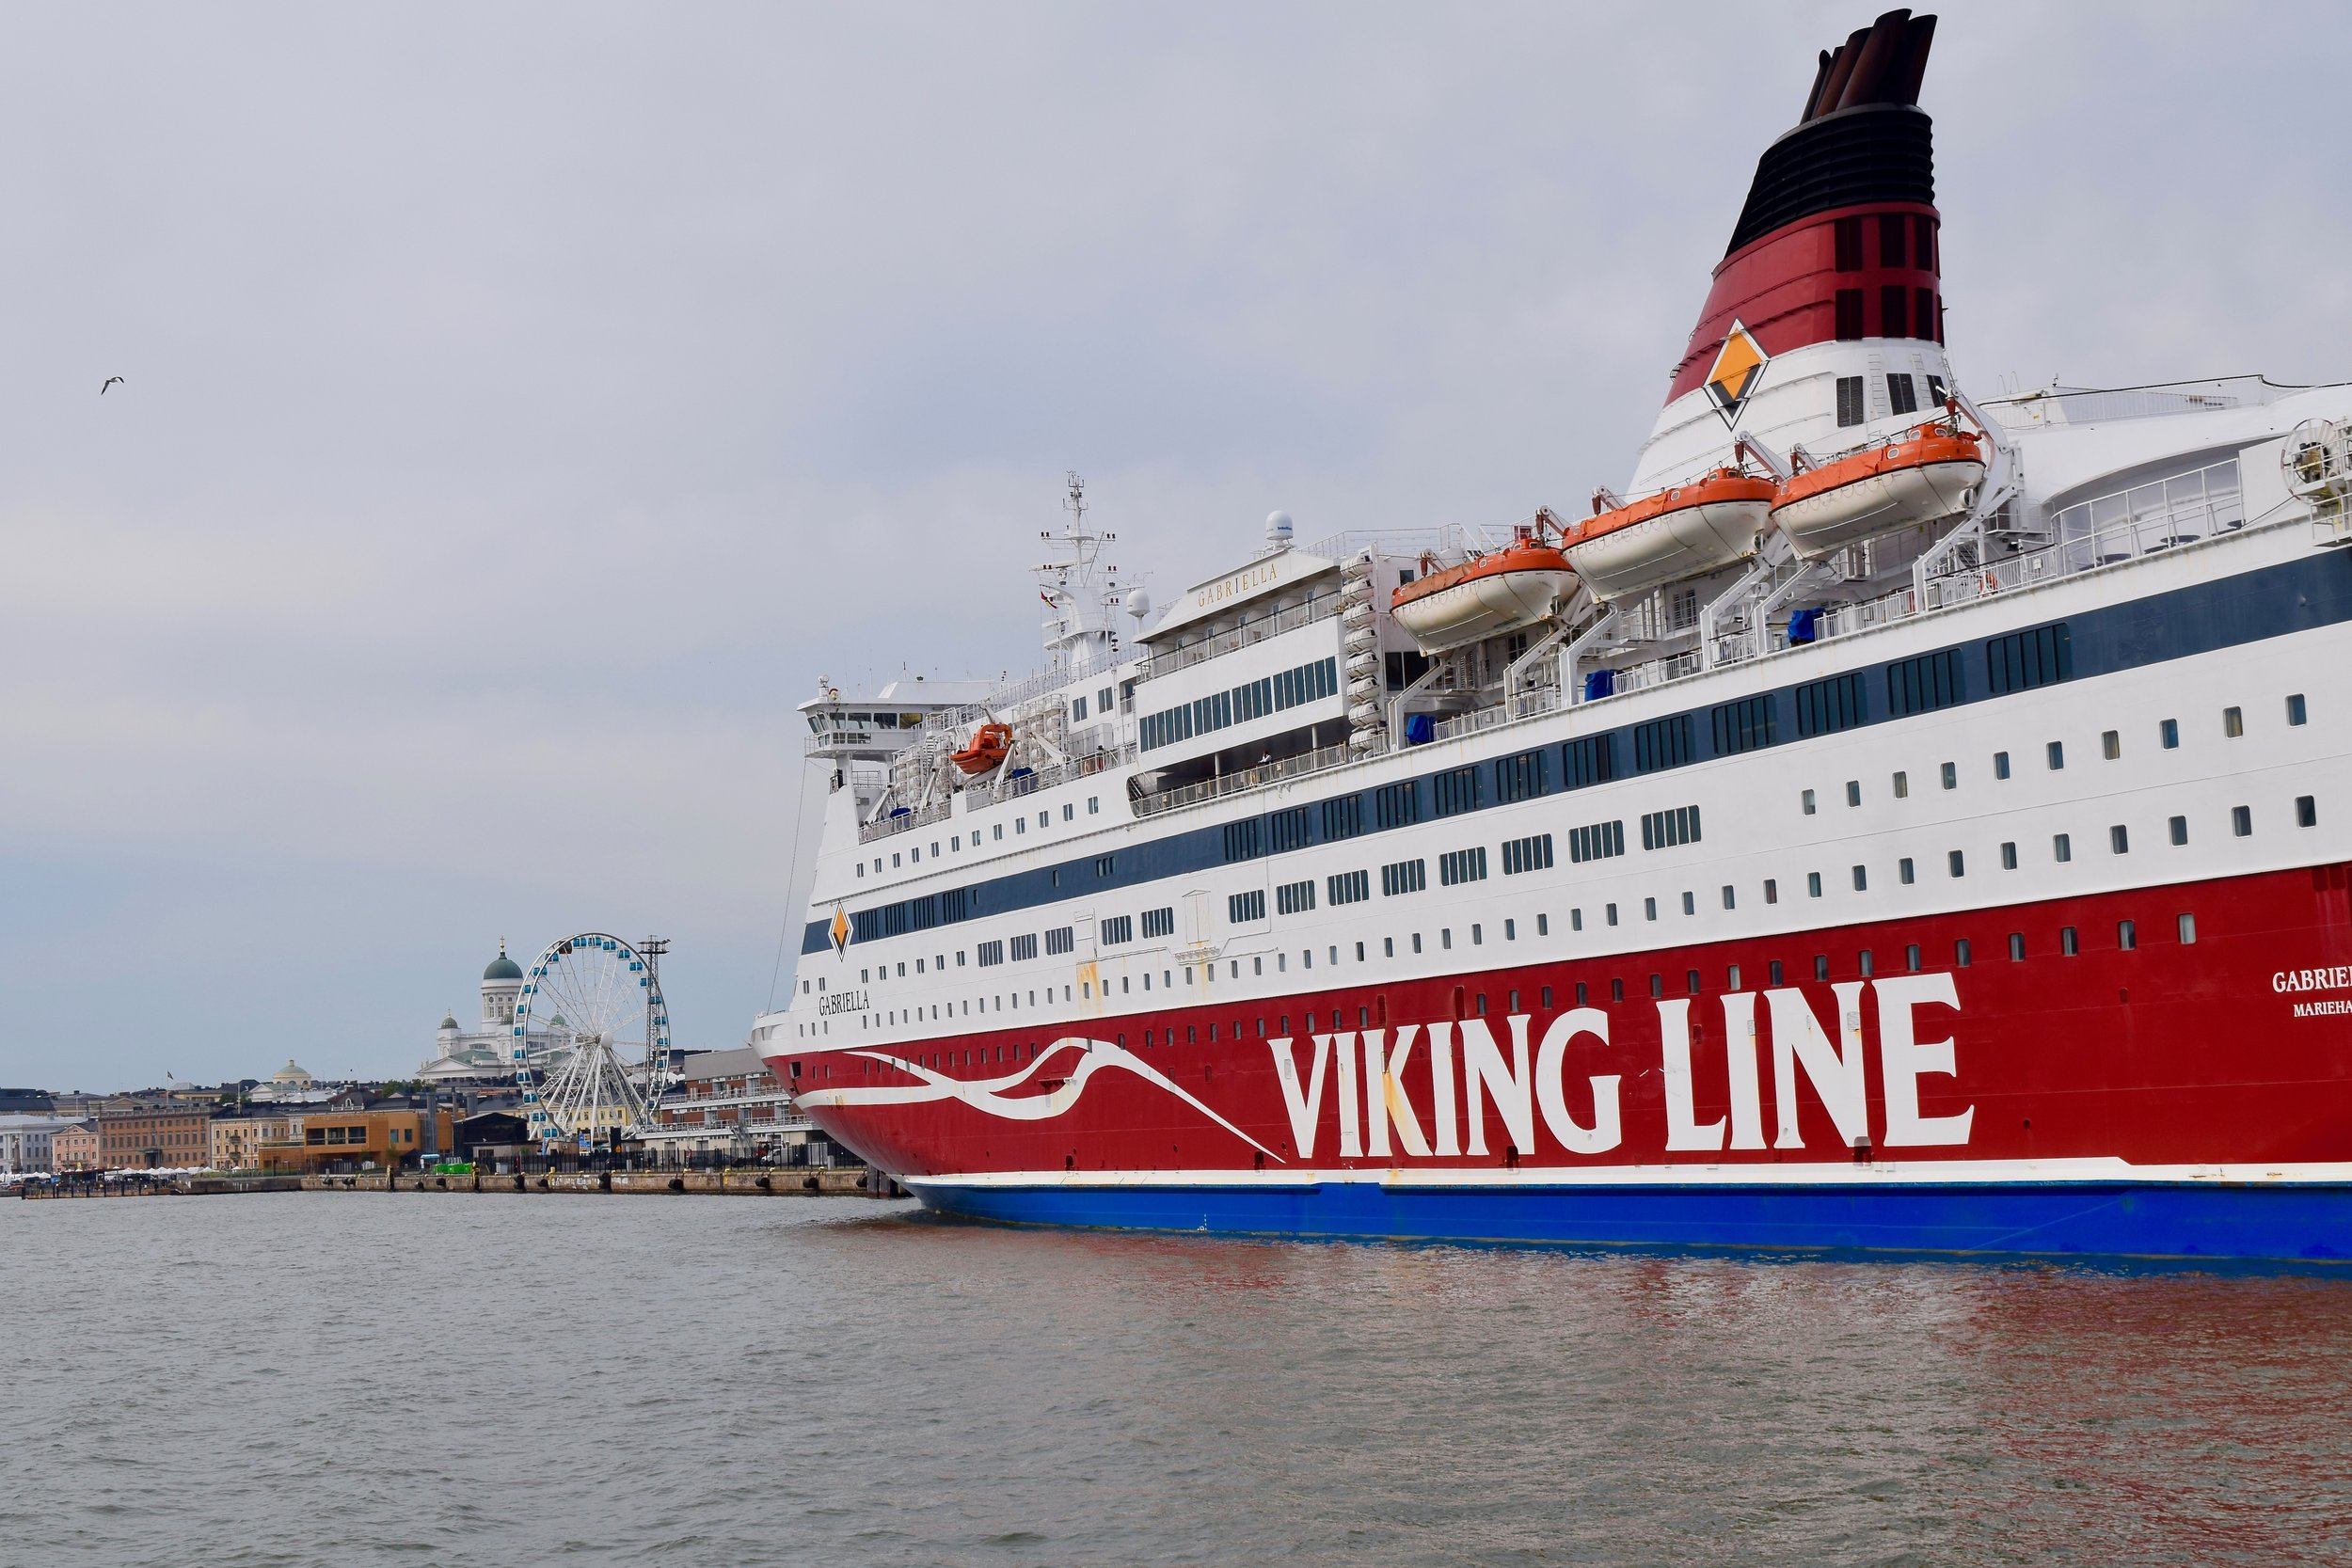 Viking Line ferry from Helsinki to Tallinn